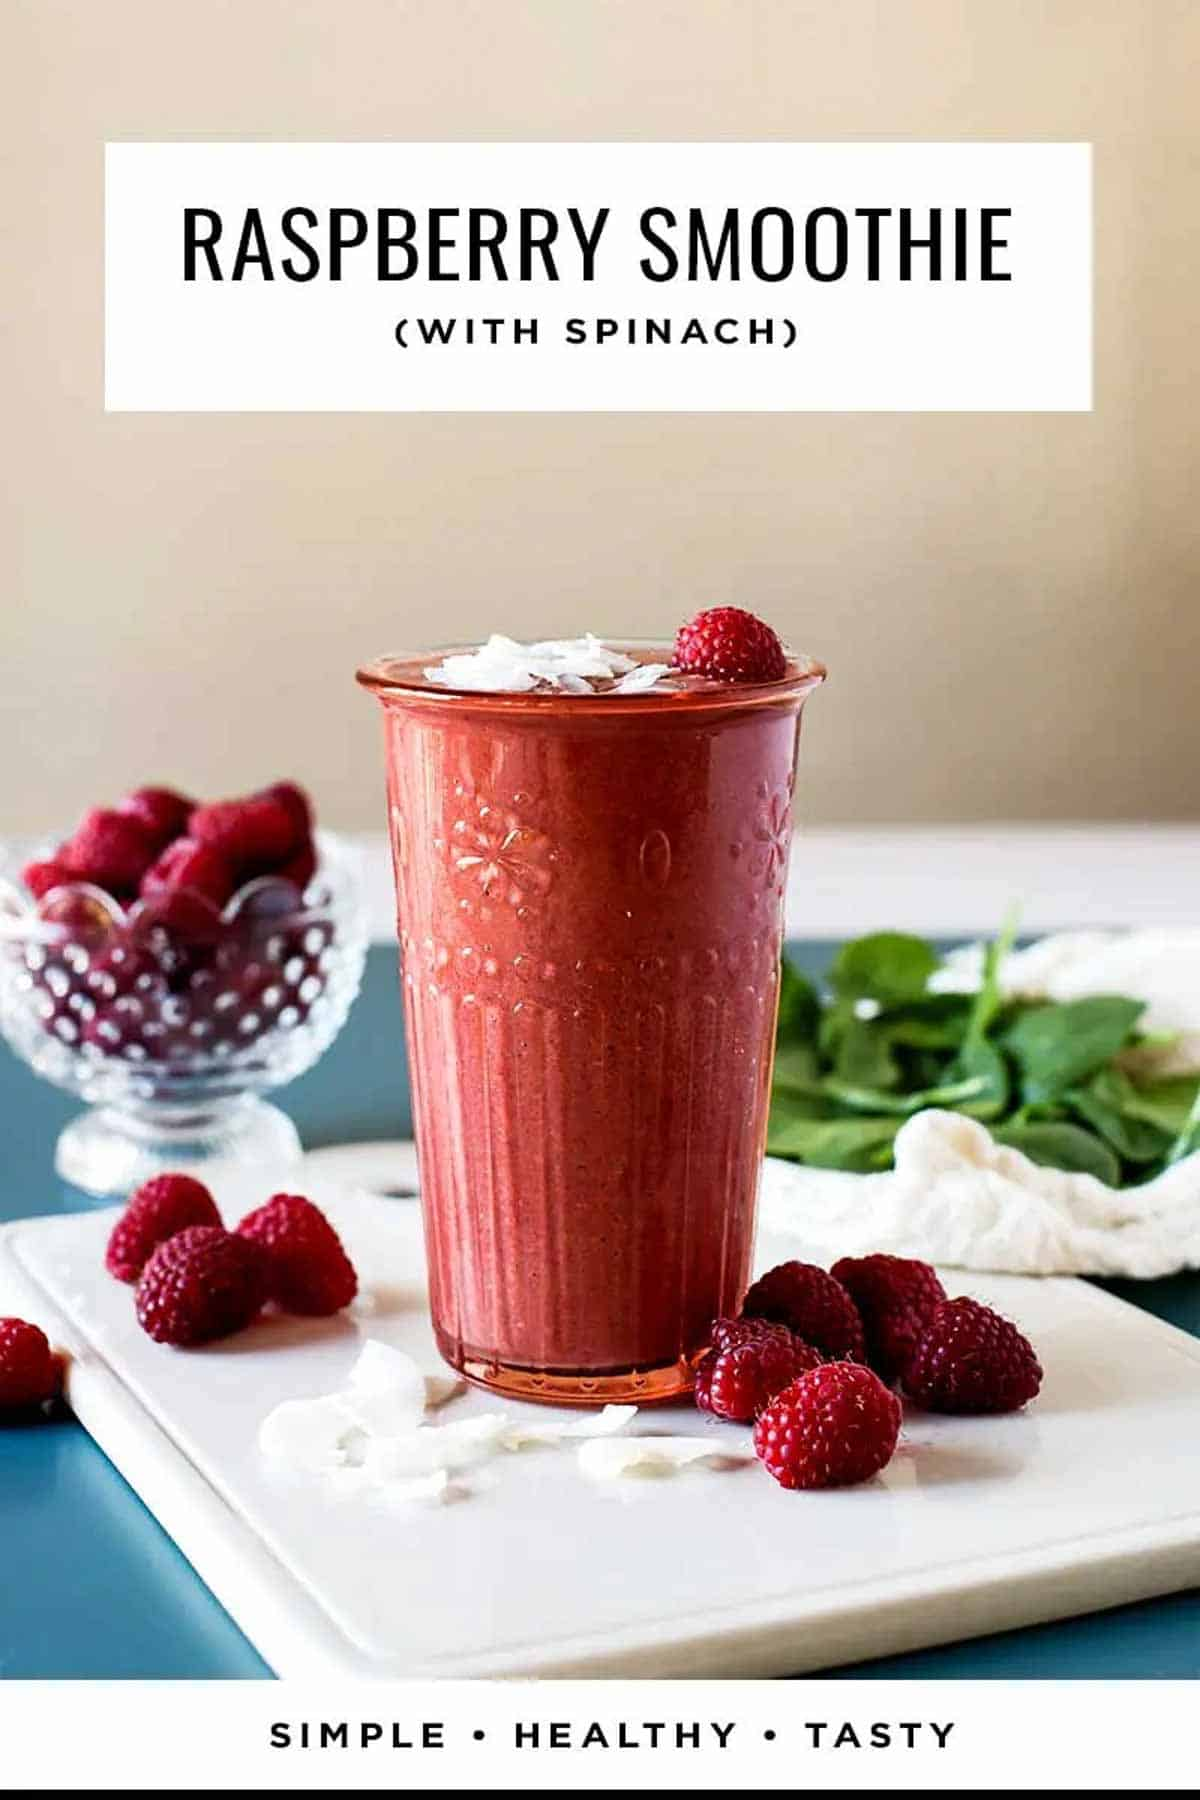 Raspberry smoothie with spinach